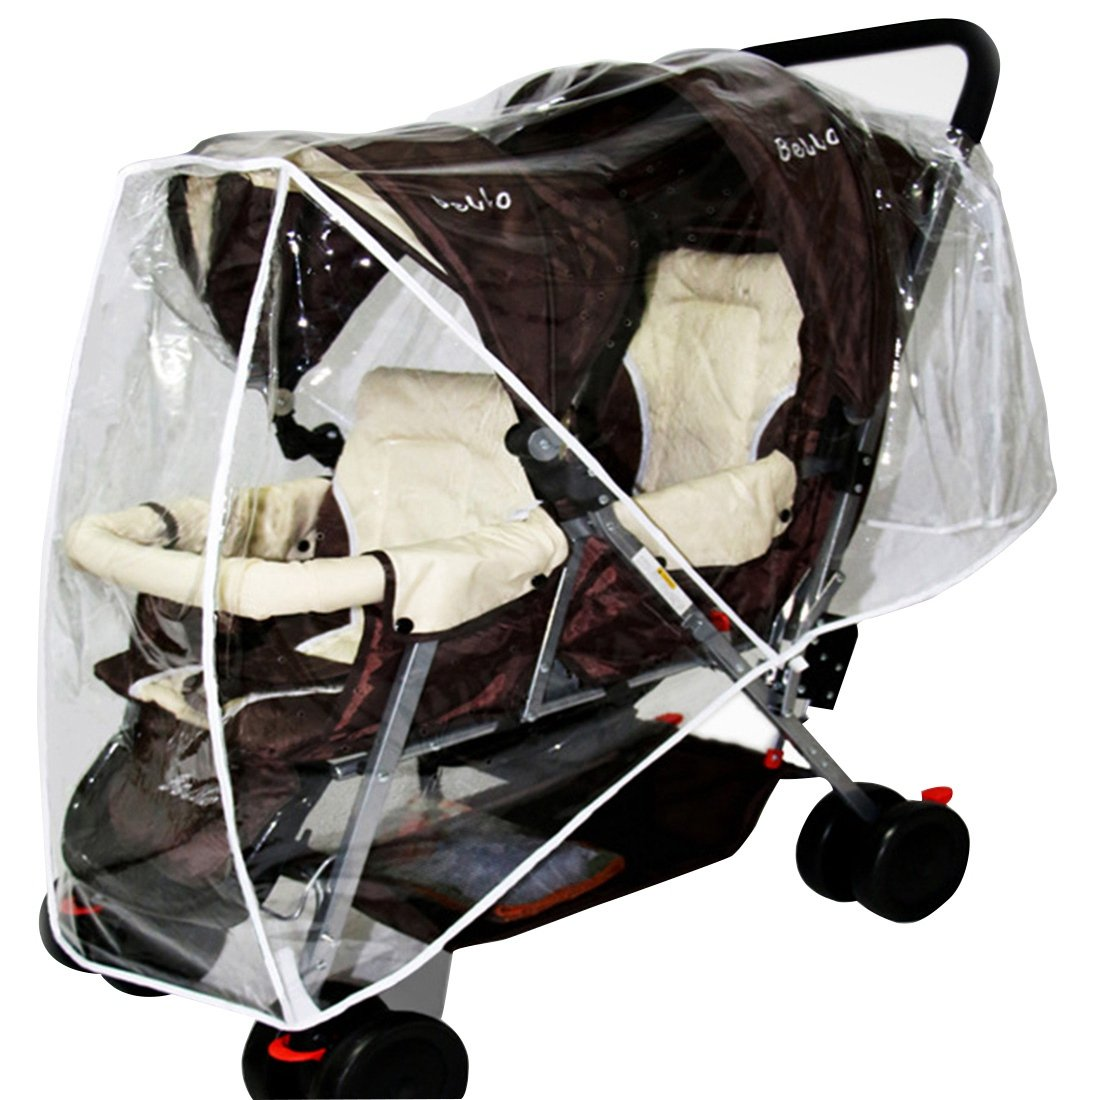 Xianheng Stroller Rain Cover Transparent Clear Waterproof Weathershield Double Pushchair Buggy Wind Shield